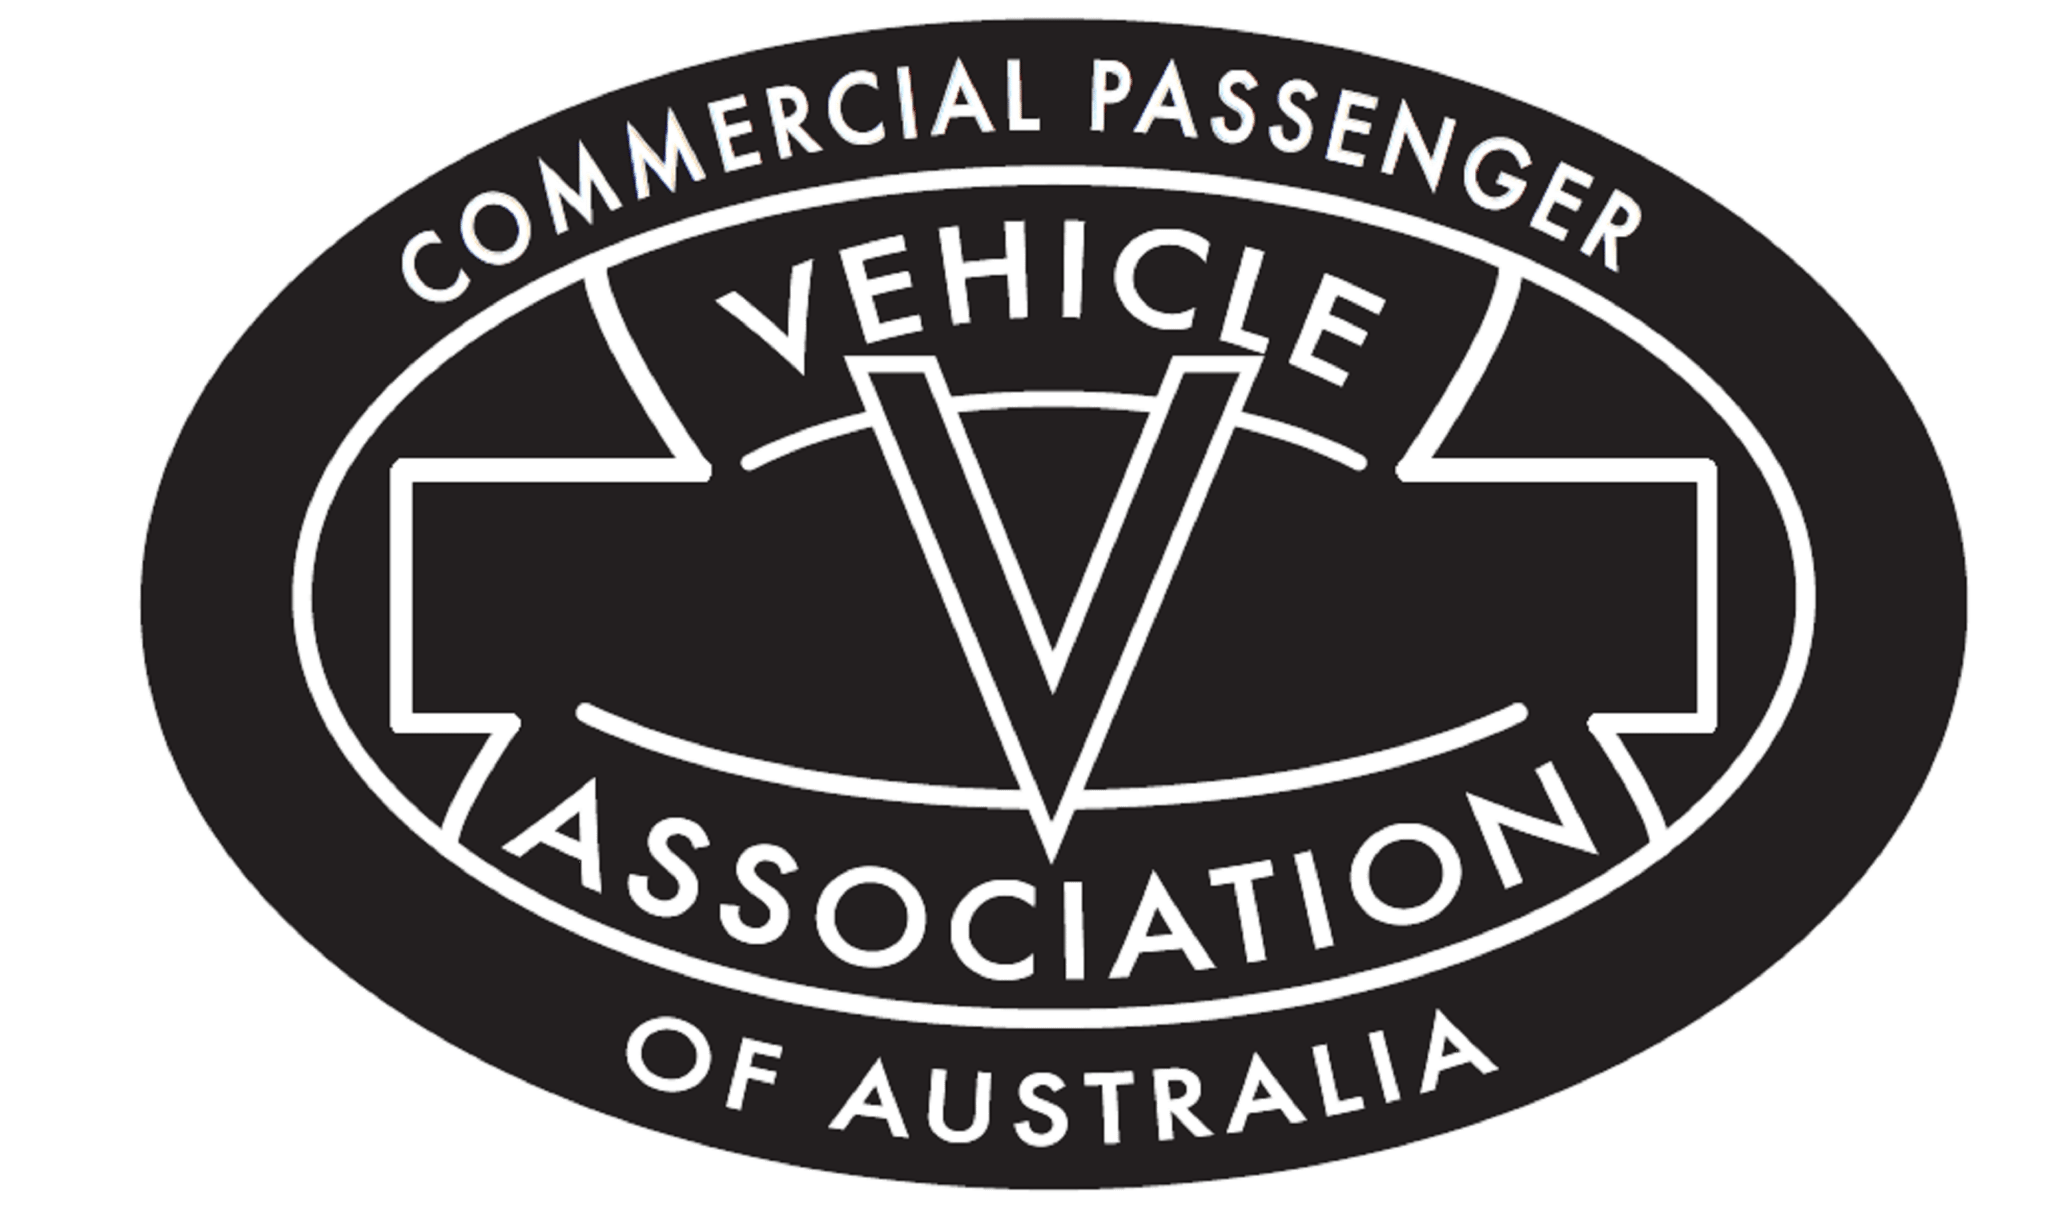 Commercial Passenger Vehicle Association of Australia